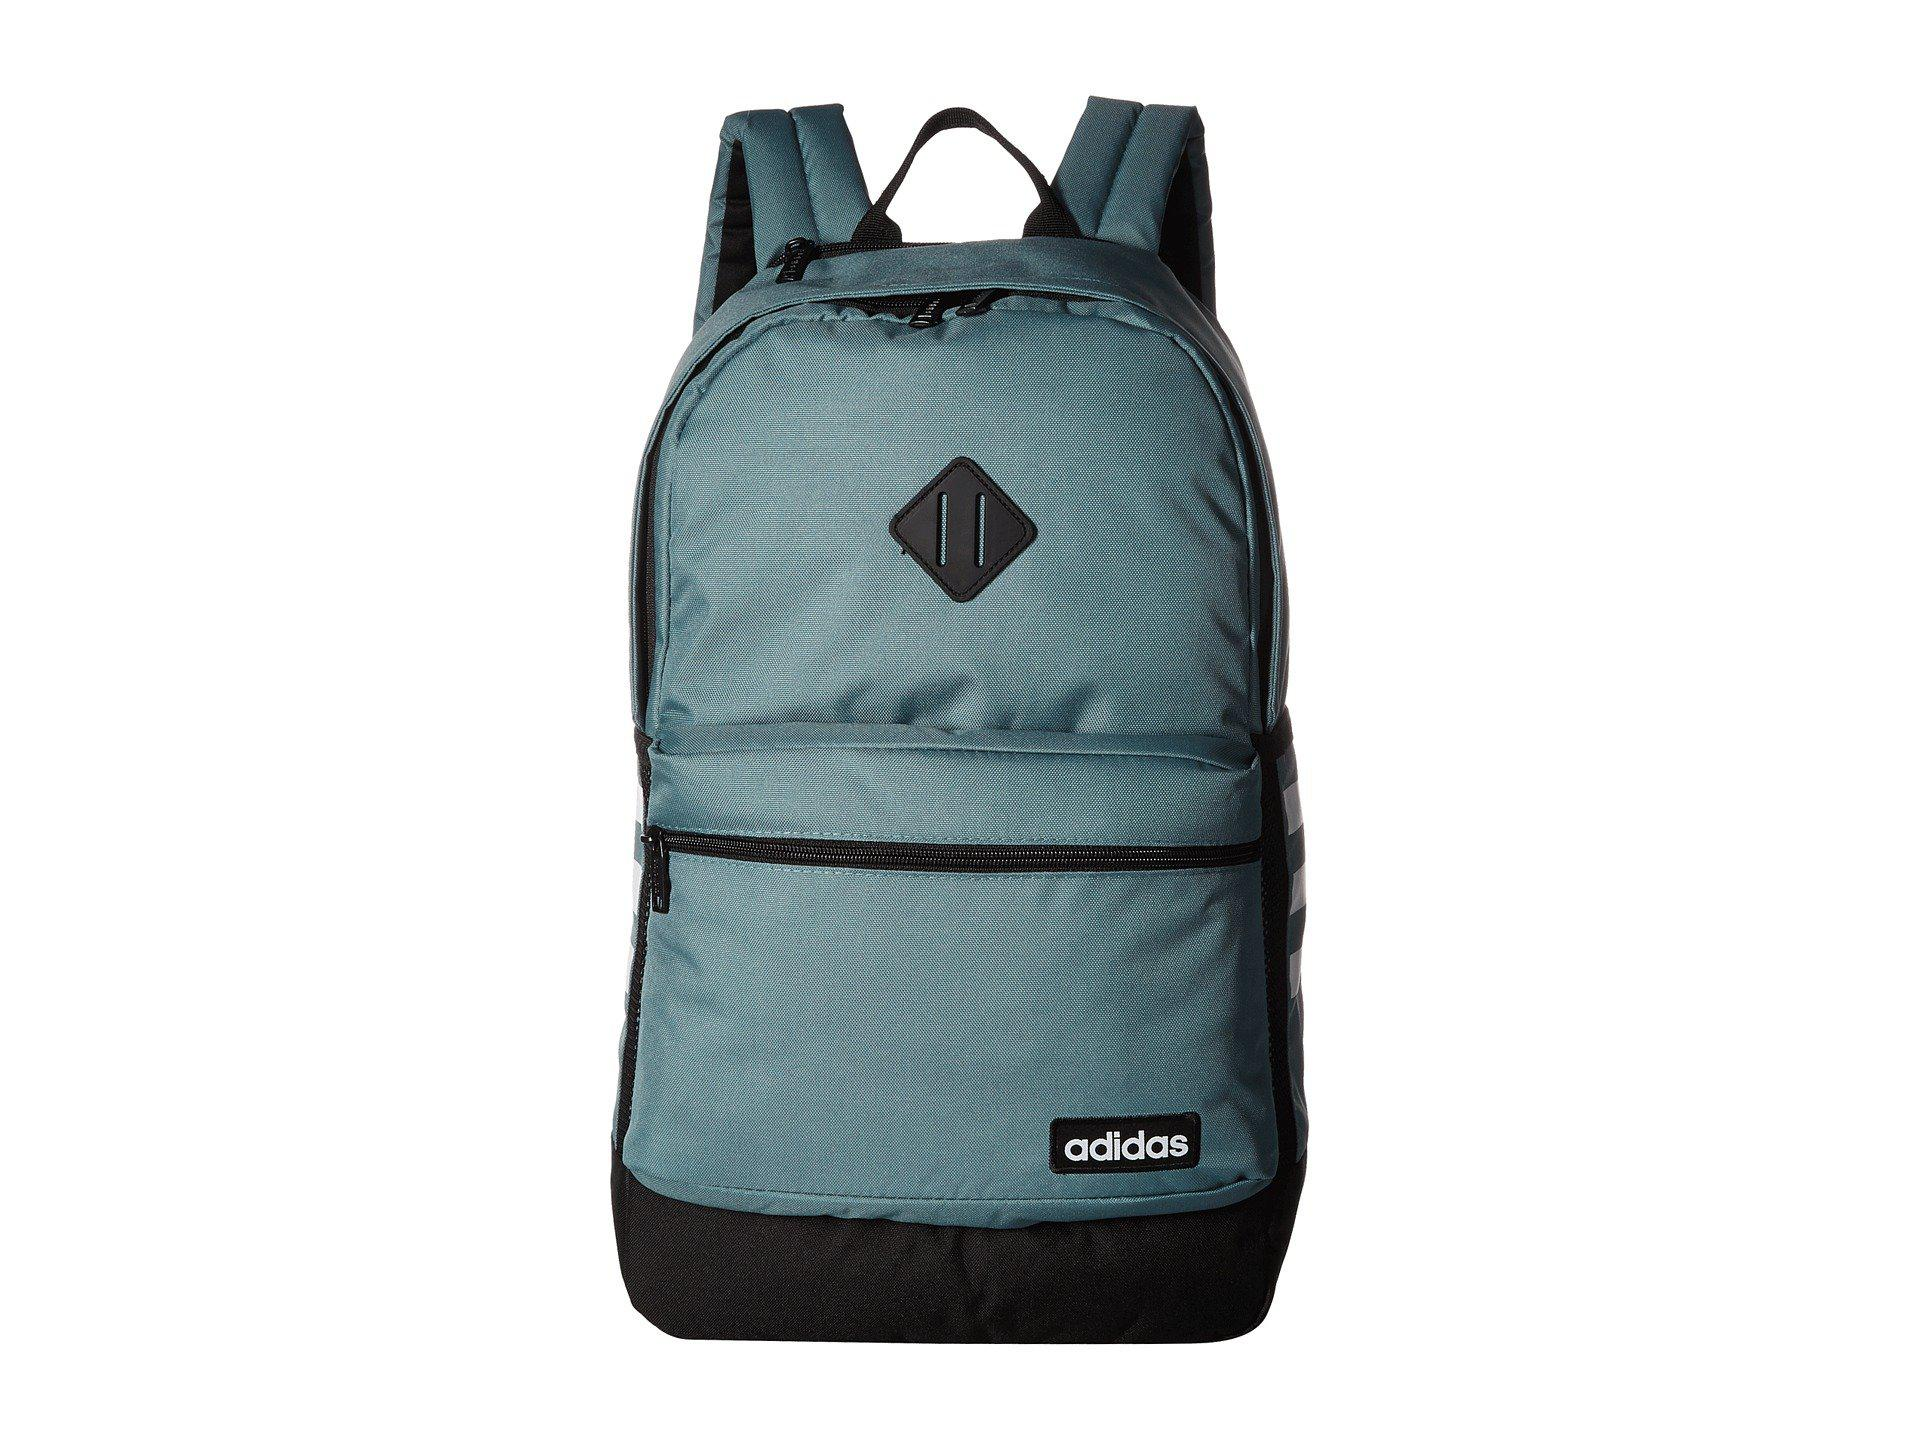 4f6d2a8095 Lyst - adidas Classic 3s Ii Backpack in Black for Men